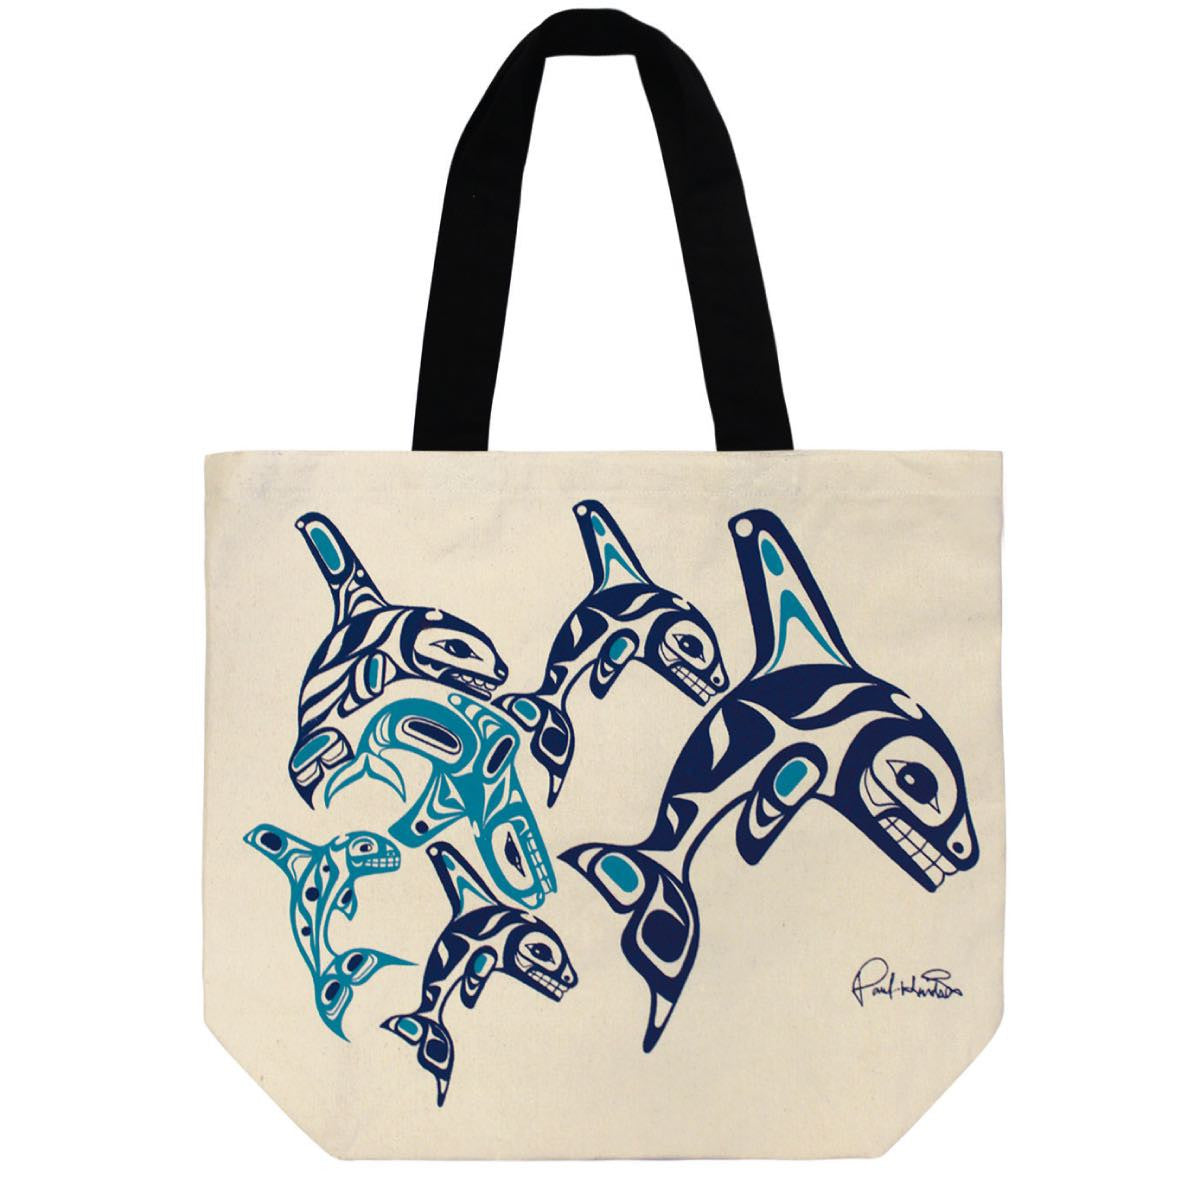 Cotton Canvas Tote Bag by Paul Windsor, Haisla/Heiltsuk